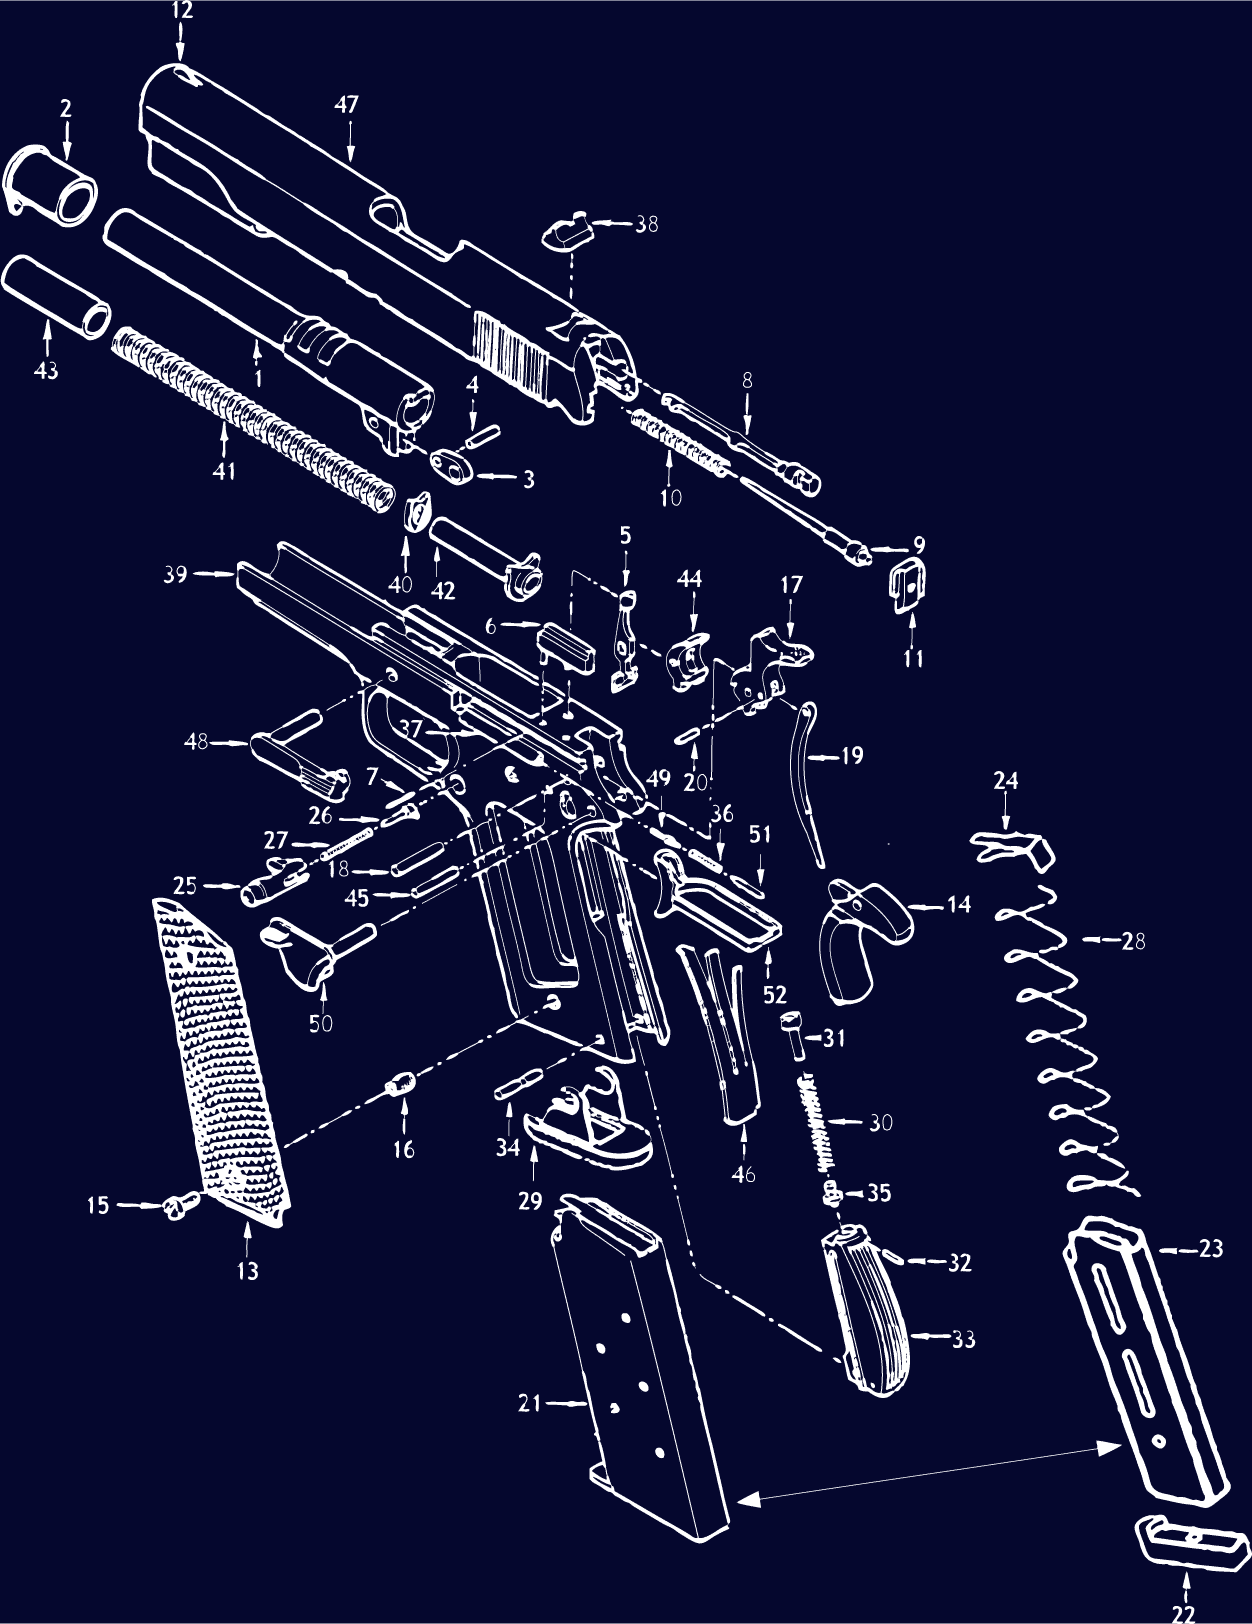 1911 Schematic - Gun Diagrams, Gun Parts | MidwayUSA on handgun concepts, handgun diagrams, handgun power, handgun components, handgun prototypes, handgun information, handgun parts, handgun dimensions, handgun accessories, handgun drawings, handgun illustrations, handgun blueprints, handgun safety,